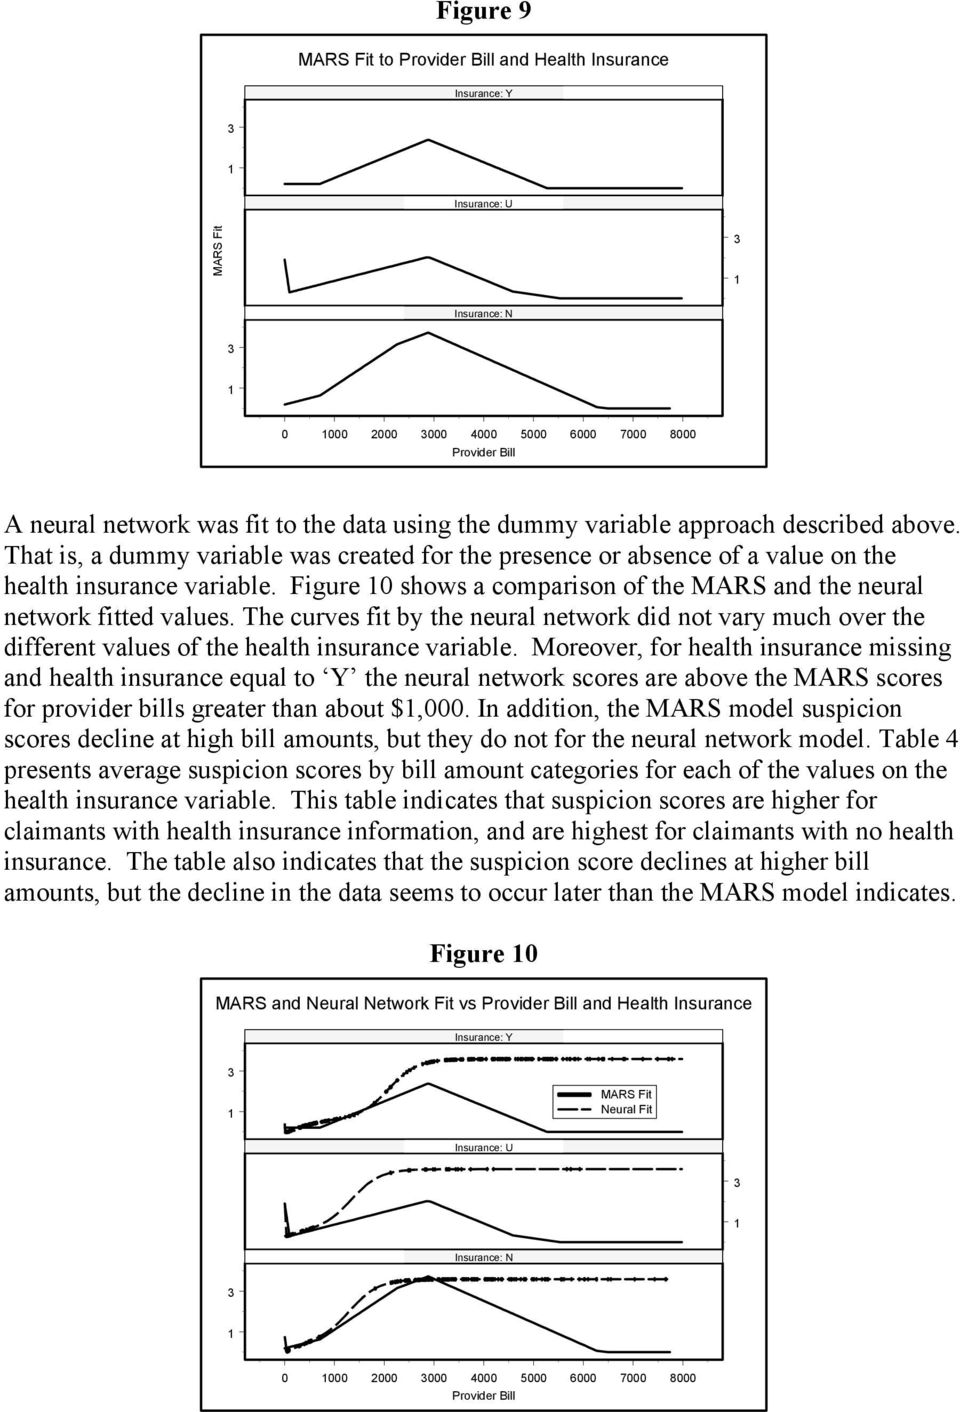 Figure 10 shows a comparison of the MARS and the neural network fitted values. The curves fit by the neural network did not vary much over the different values of the health insurance variable.